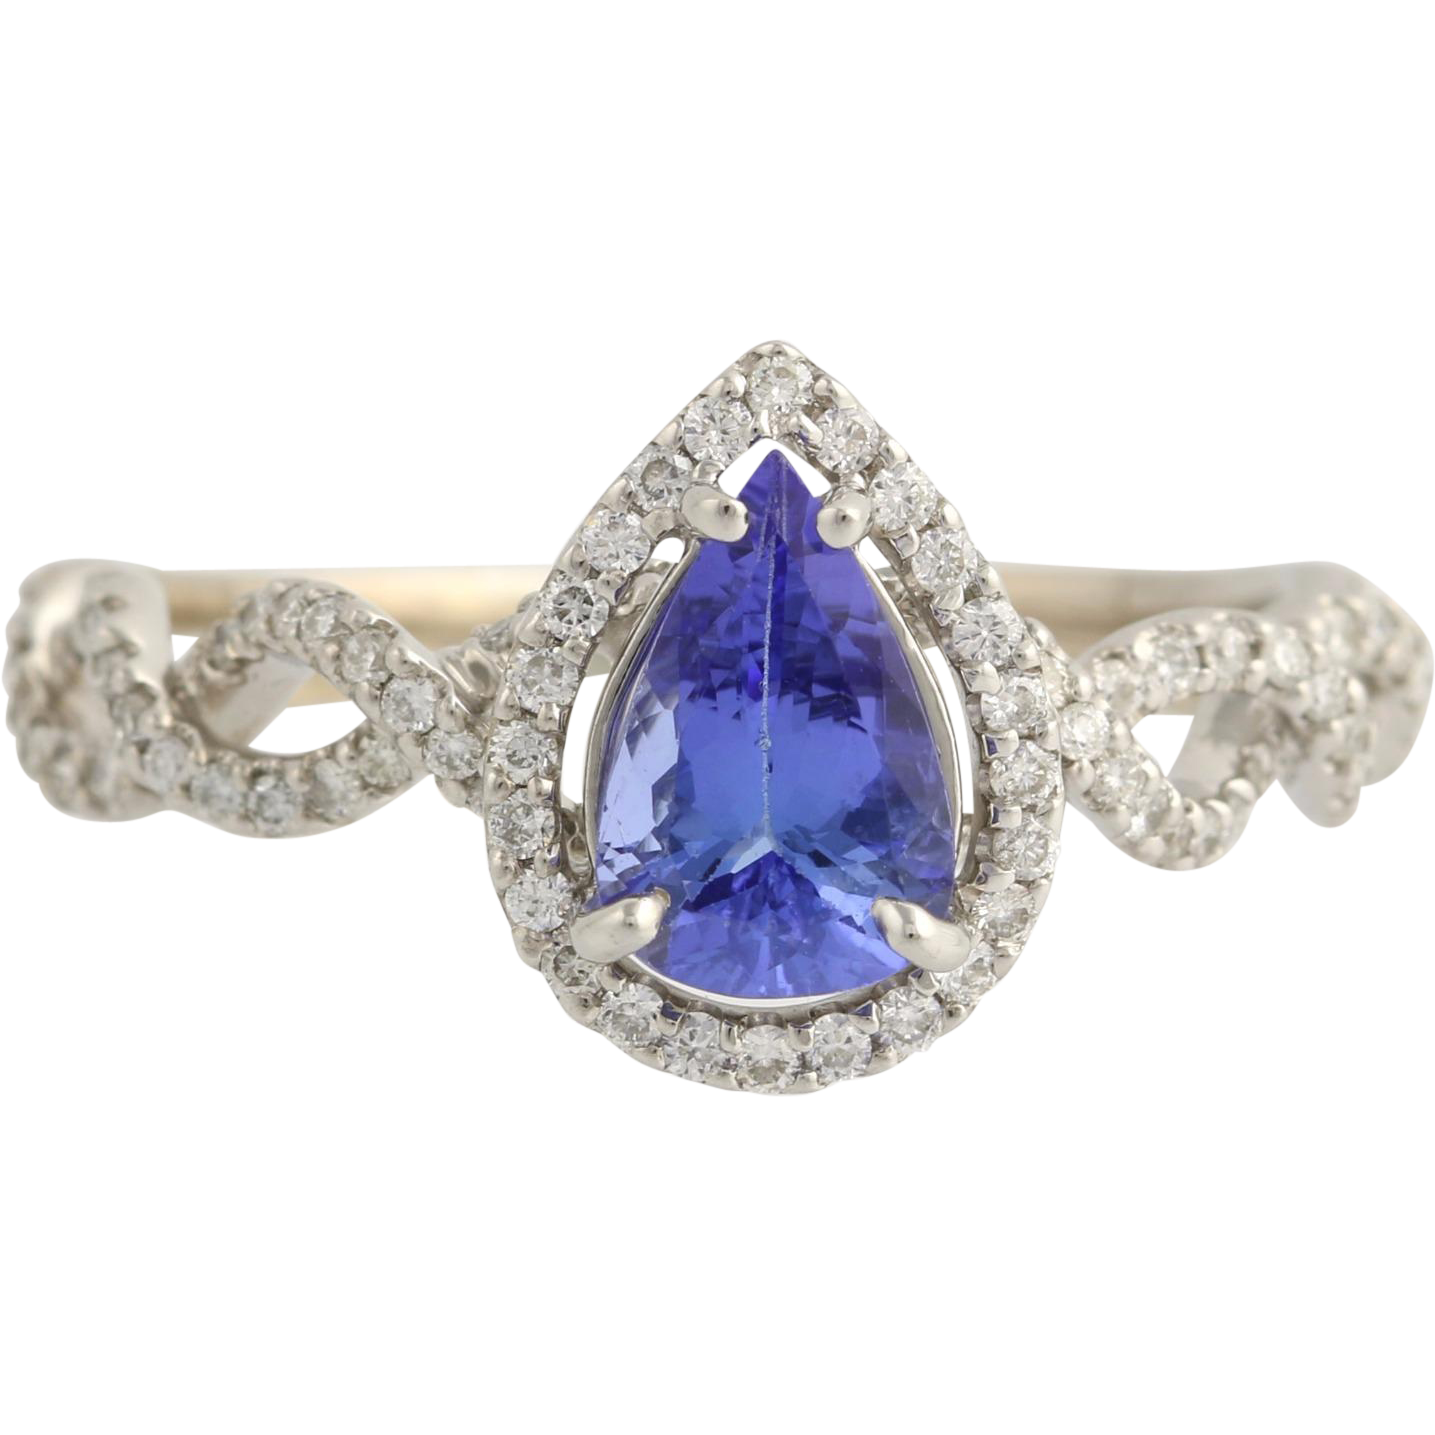 Tanzanite & Diamond Halo Cocktail Ring - 18k White Gold High Karat Fine 2.15ctw